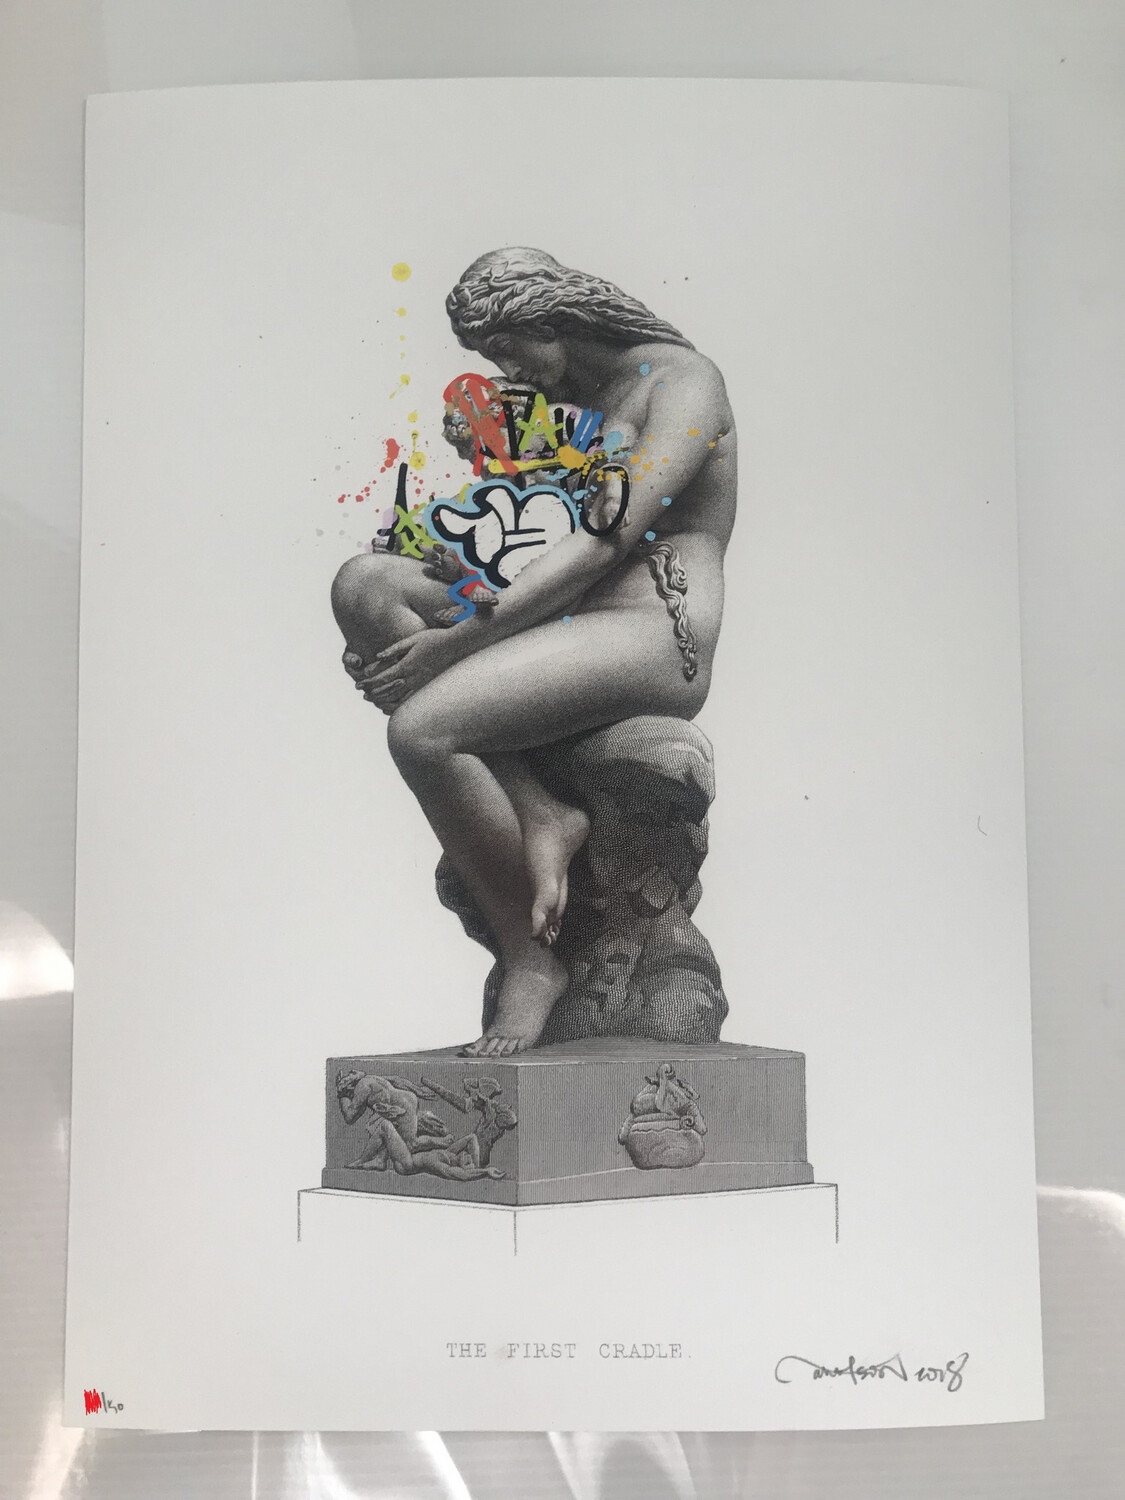 Martin Whatson - The First Cradle